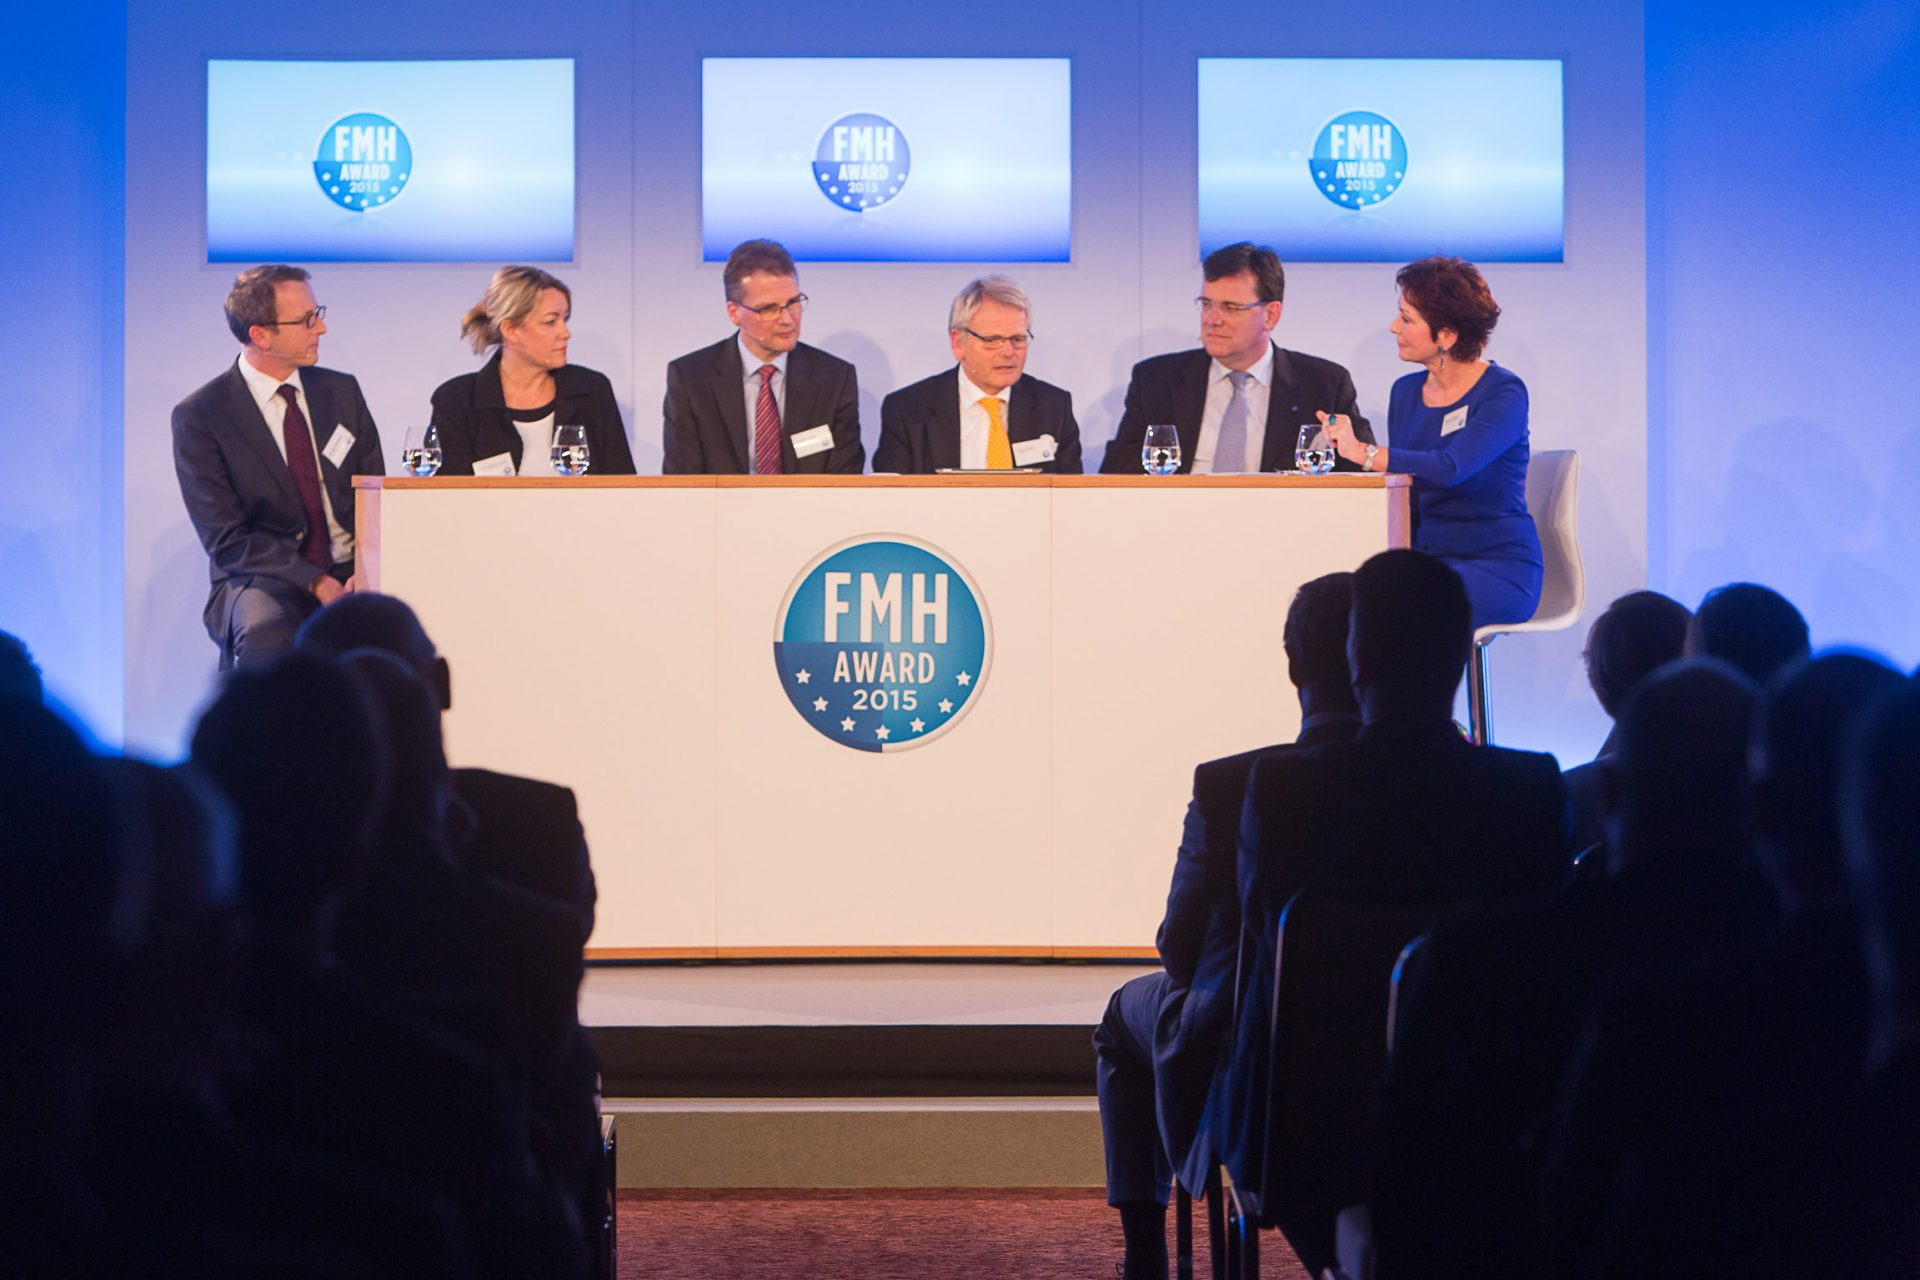 Podiumsdiskussion FMH Award